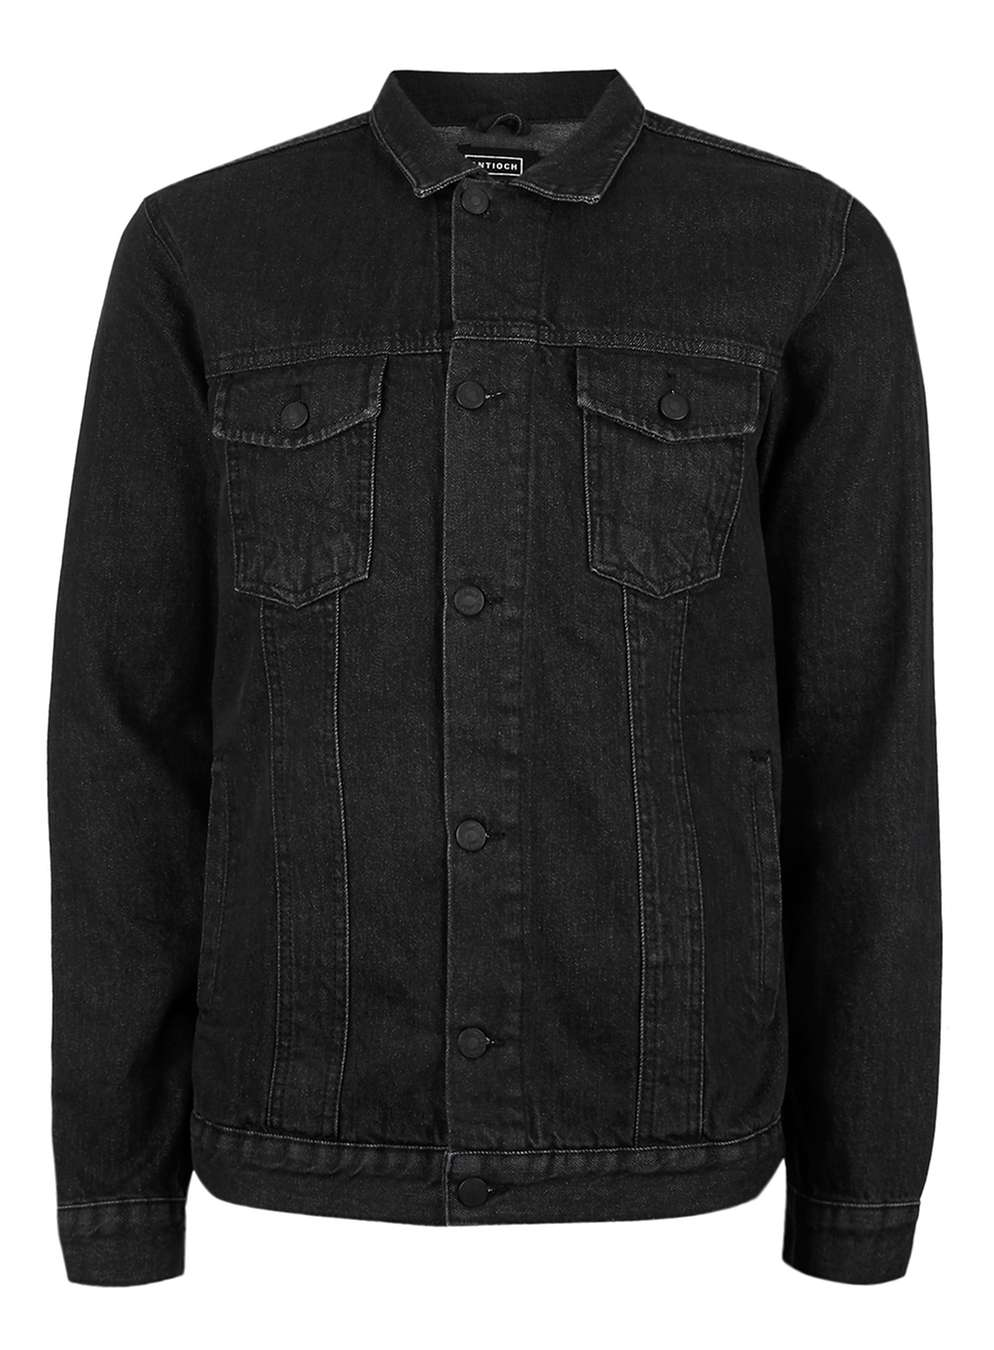 antioch black denim jacket* - topman VICWFYM